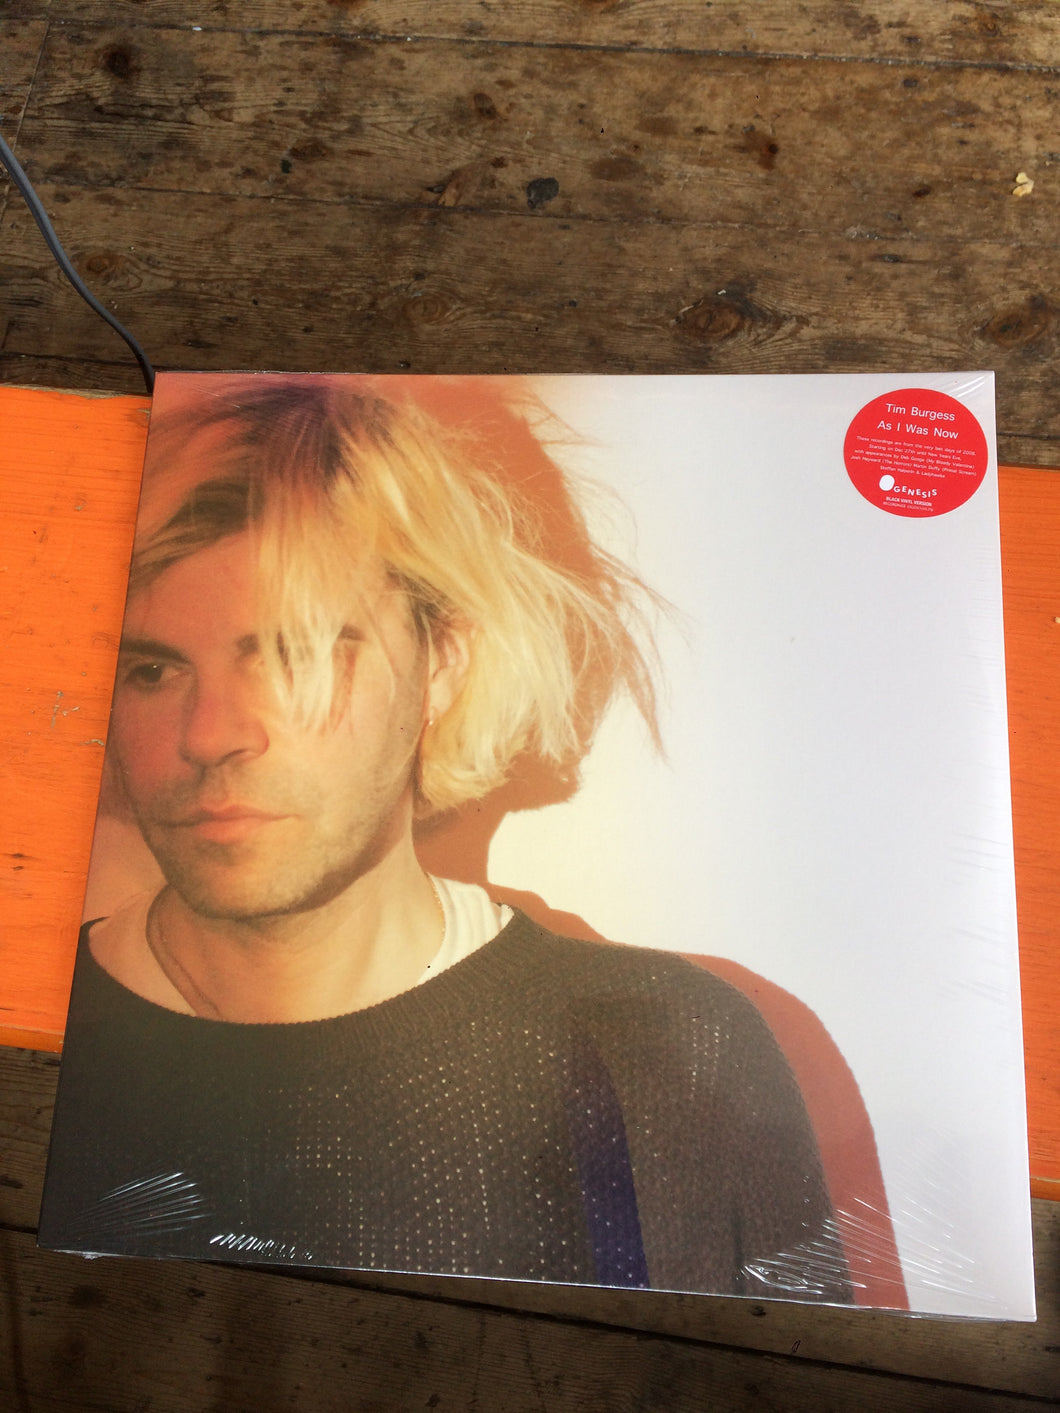 Tim Burgess - As I Was Now